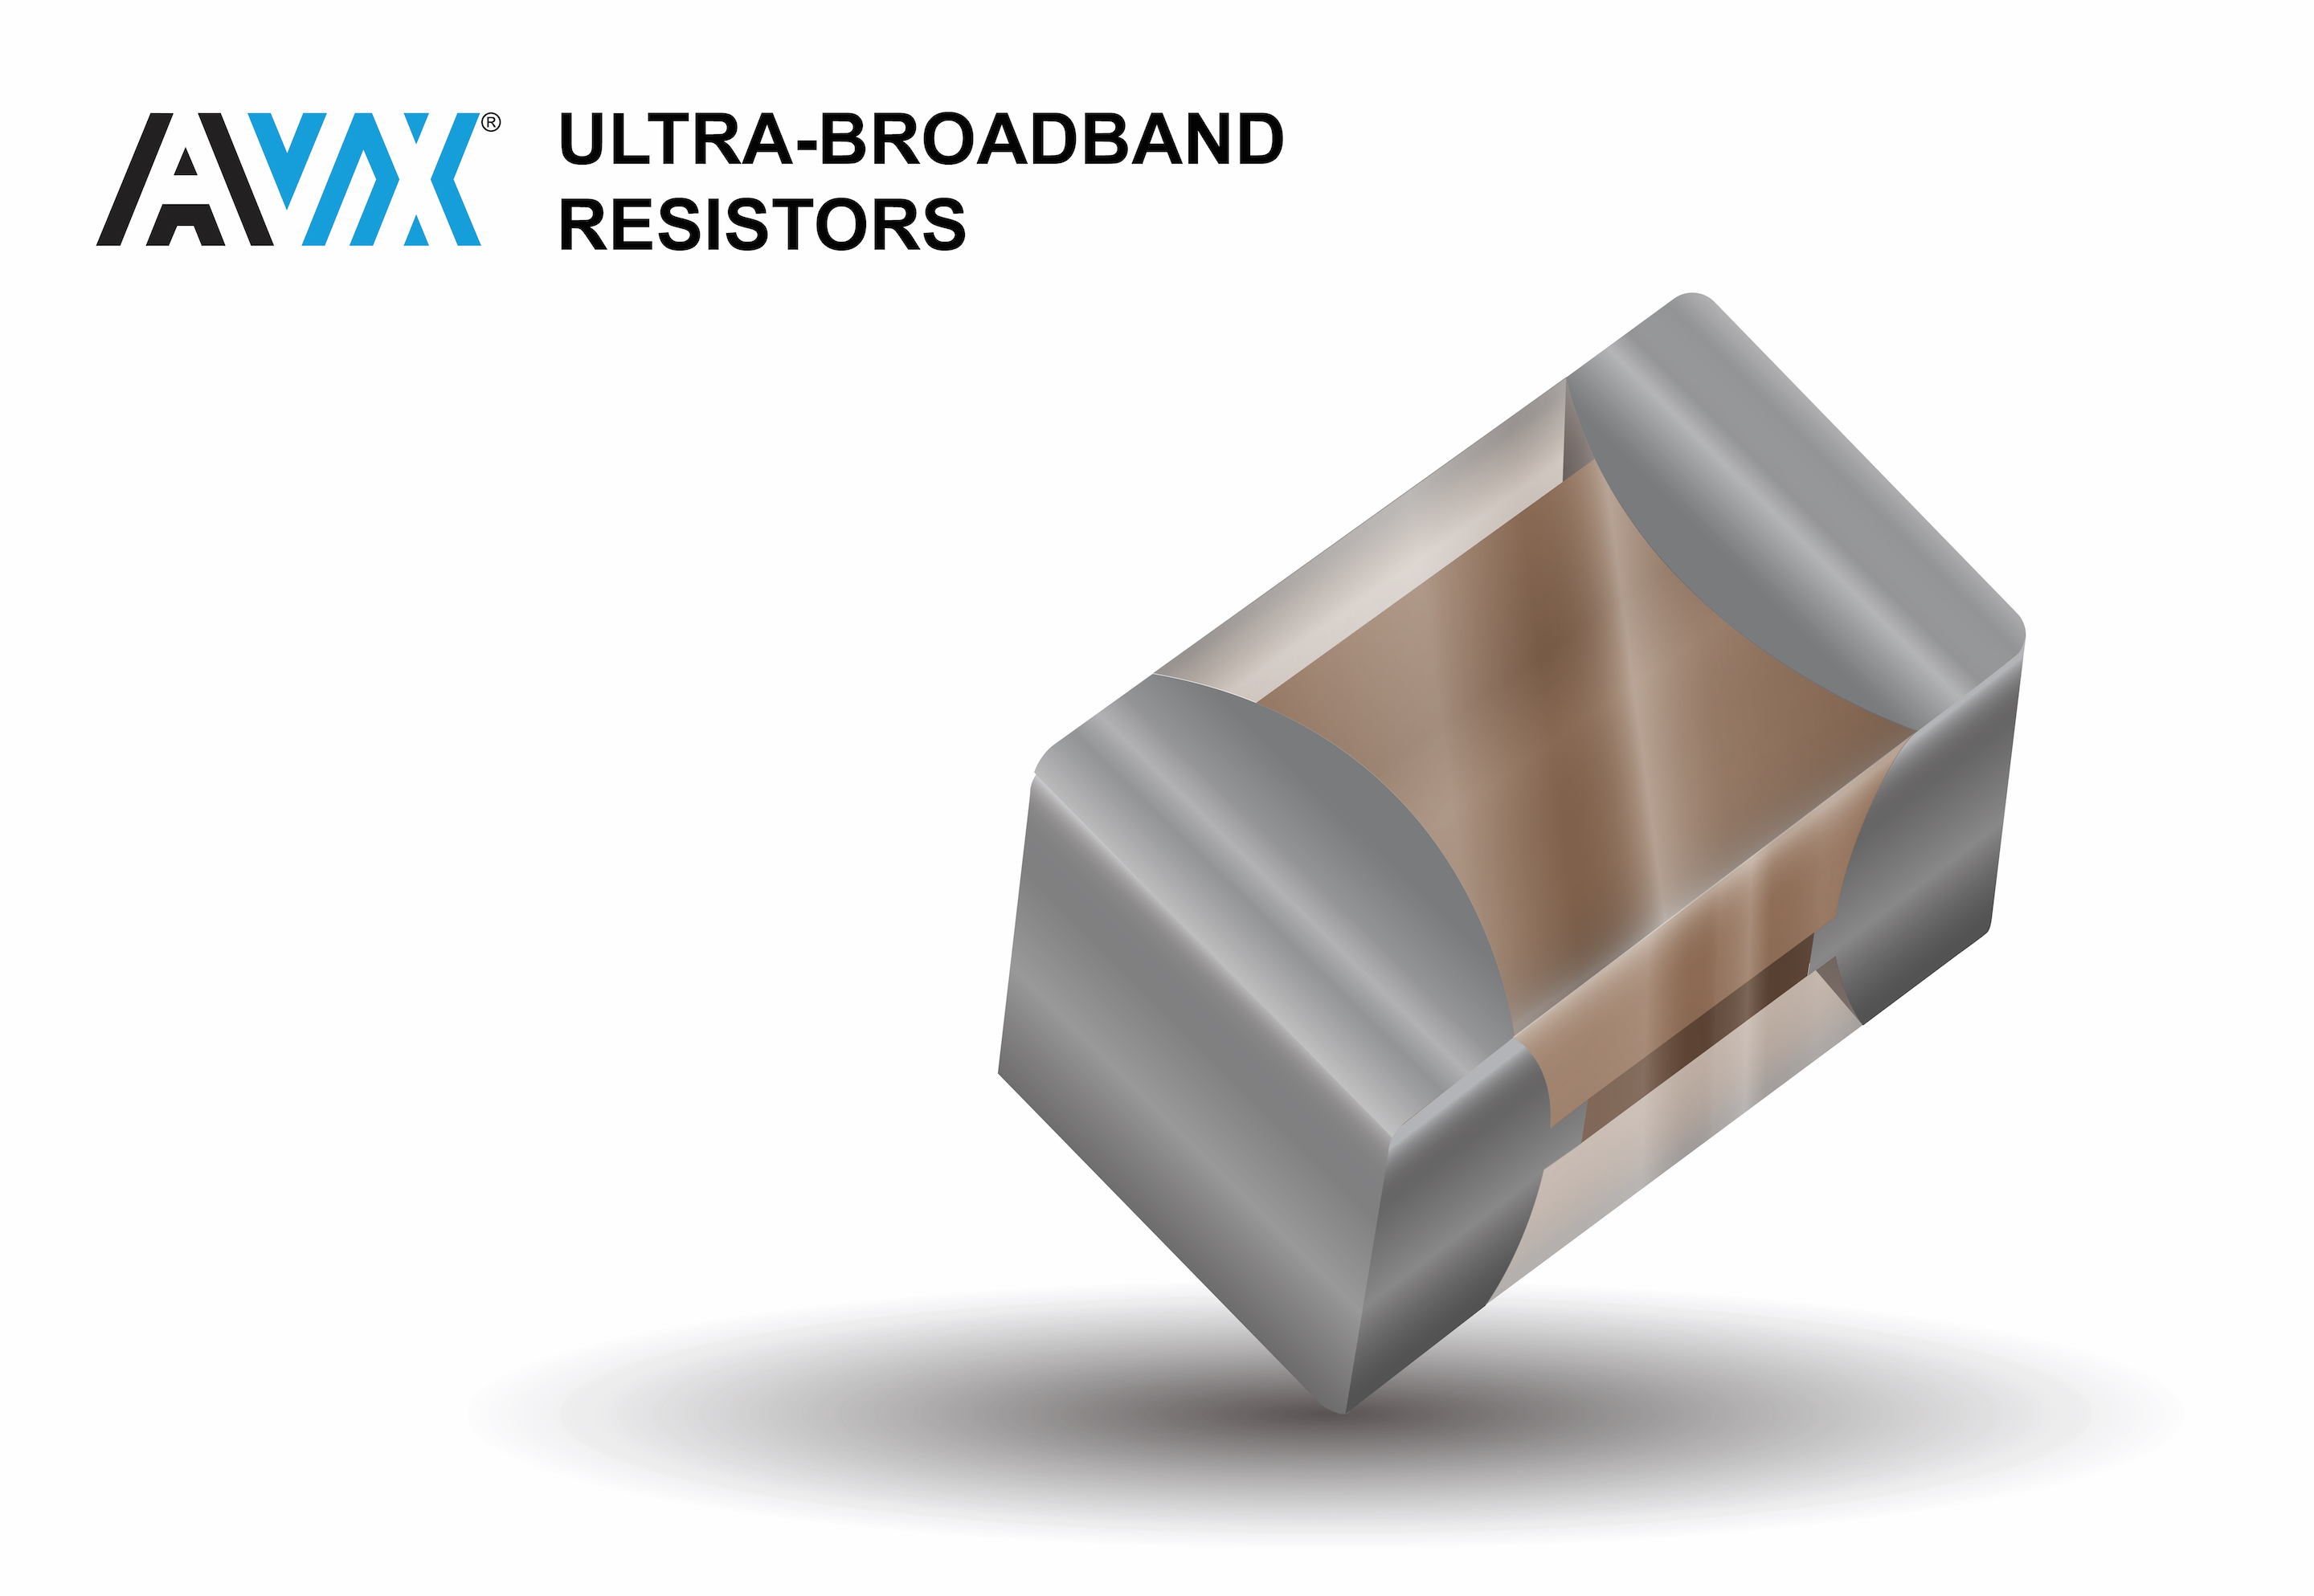 Ultra-Broadband Resistors Feature a Rugged Construction, Tight Tolerances, & a 125mW Power Rating